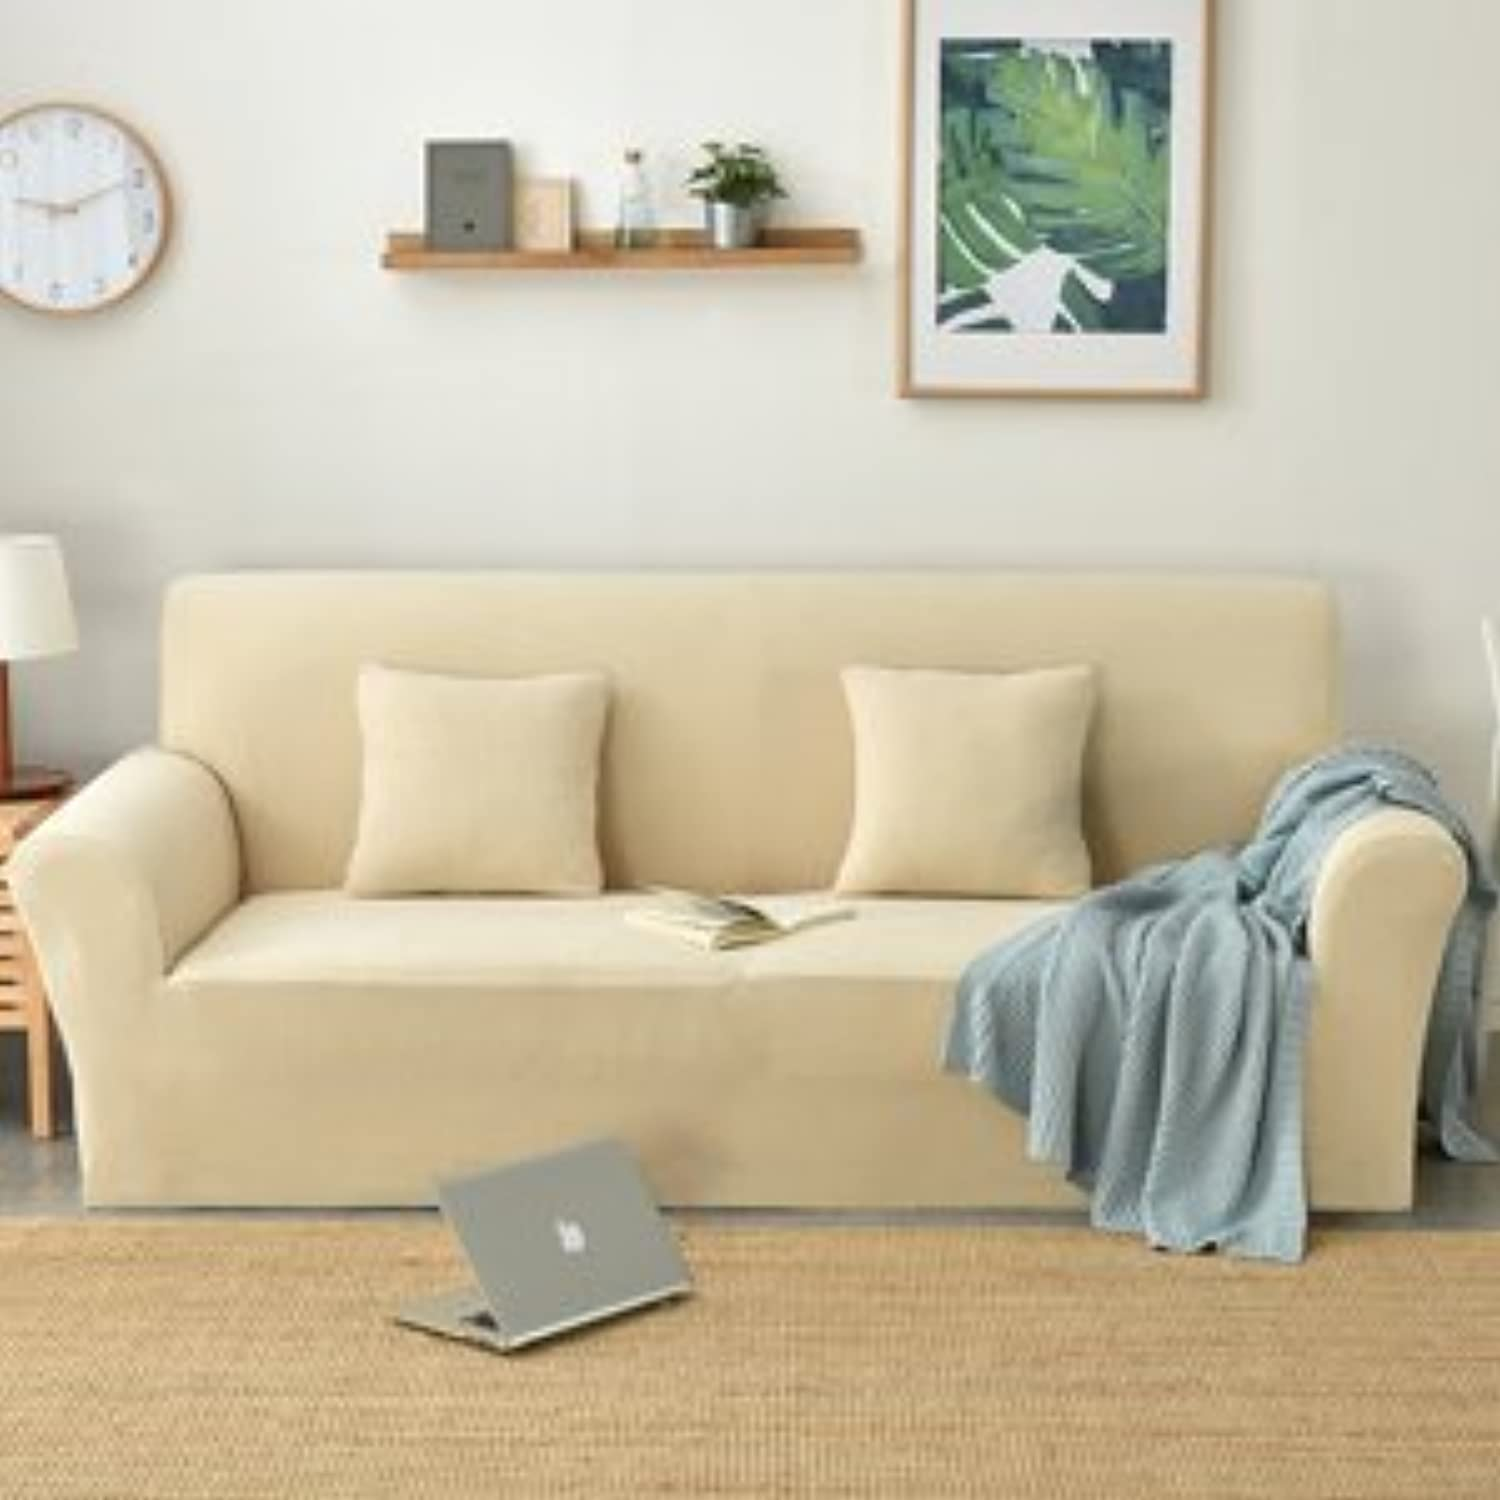 Svetanya Amazon Hot Slipcovers Solid color Sofa Cover All-Inclusive Couch Case for Different Shape Sofa S M L XL Size   20180295, S 90to140cm